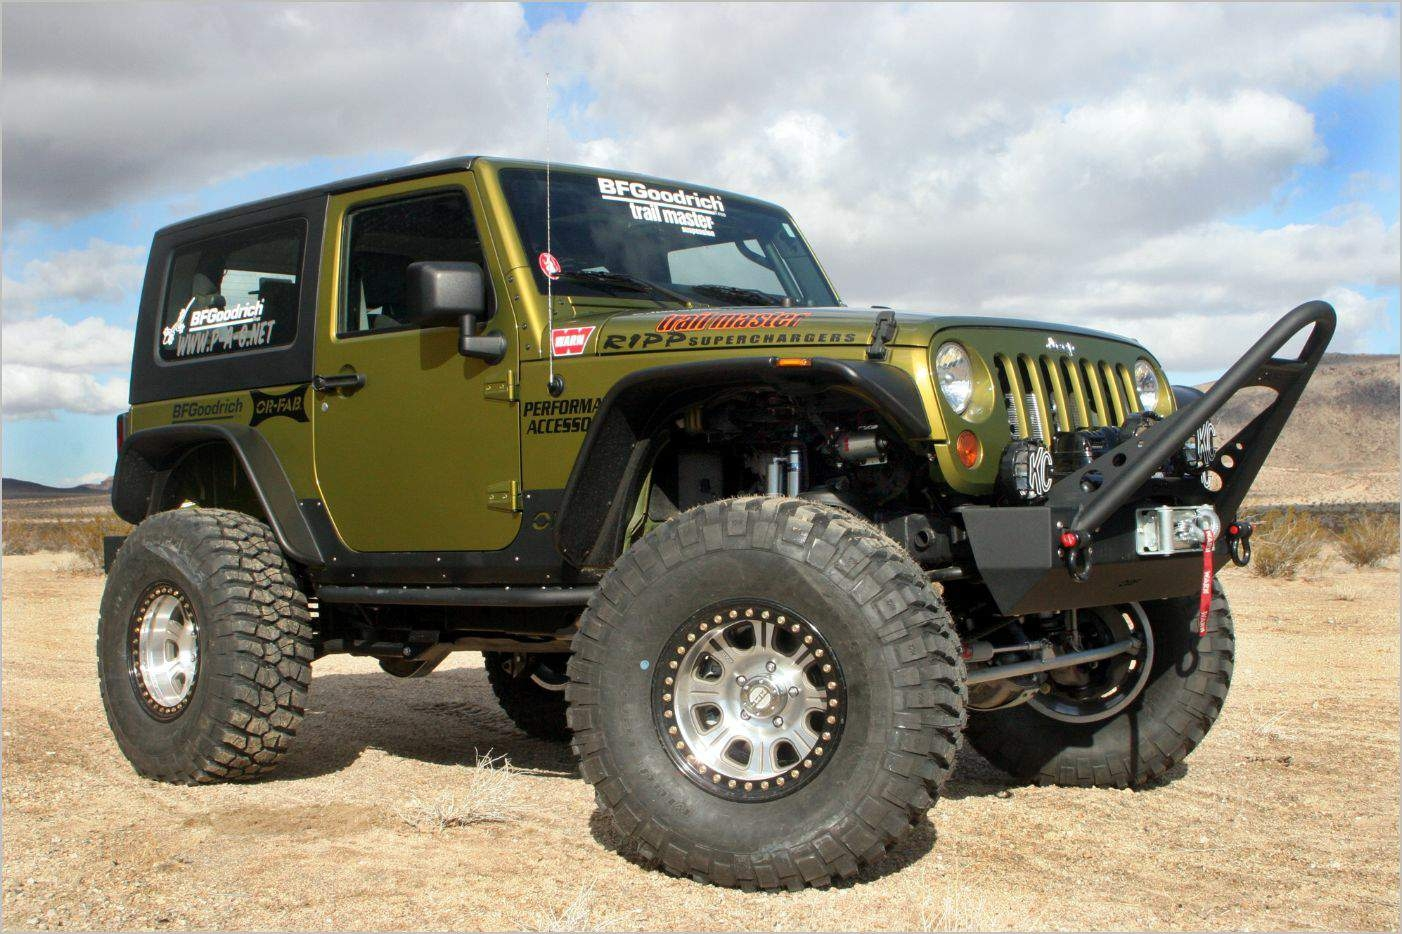 OR-FAB parts for jeeps on sale